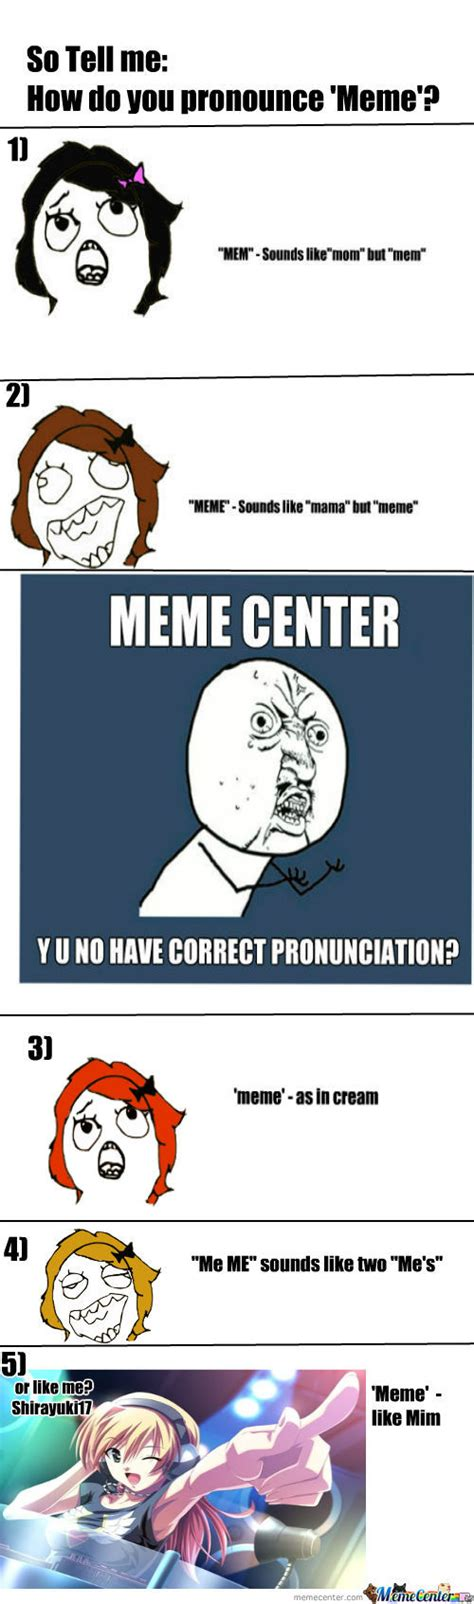 How Do You Pronounce Meme - so tell me how do you pronounce meme by shirayuki17 meme center